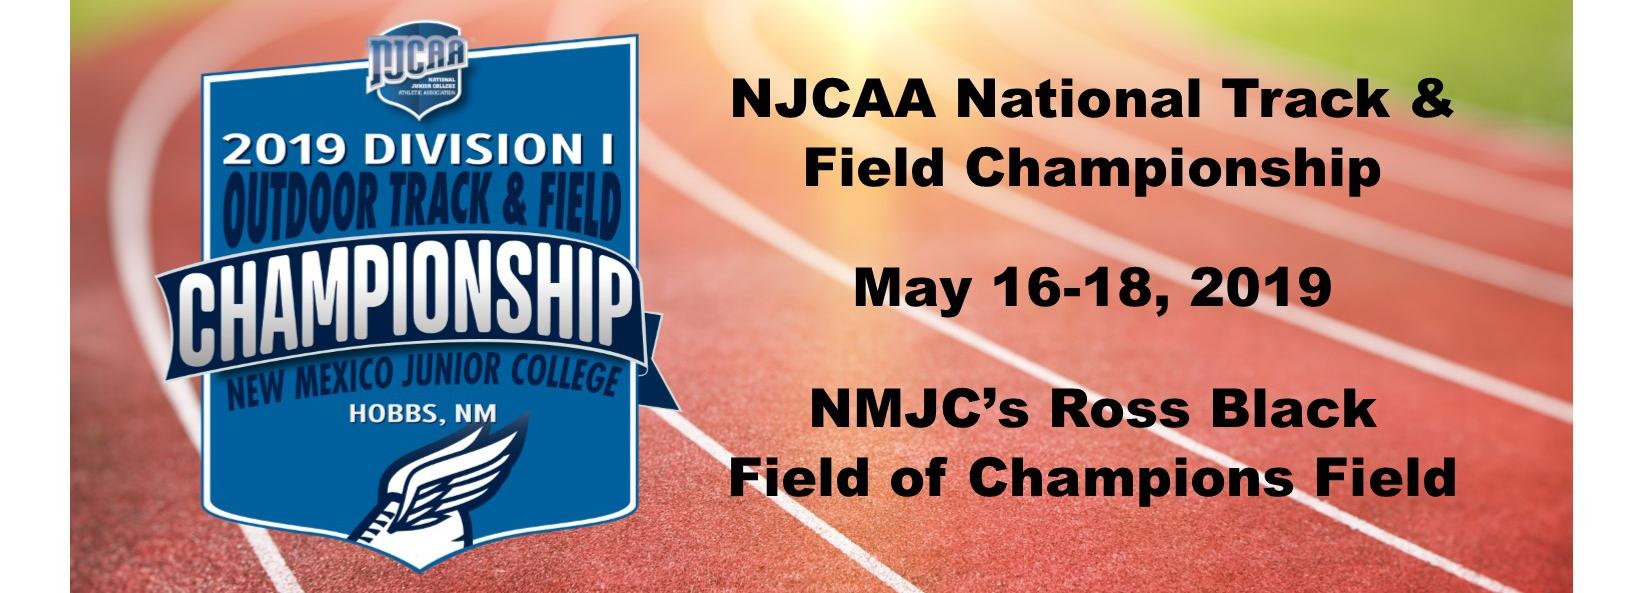 NJCAA National Track and Field